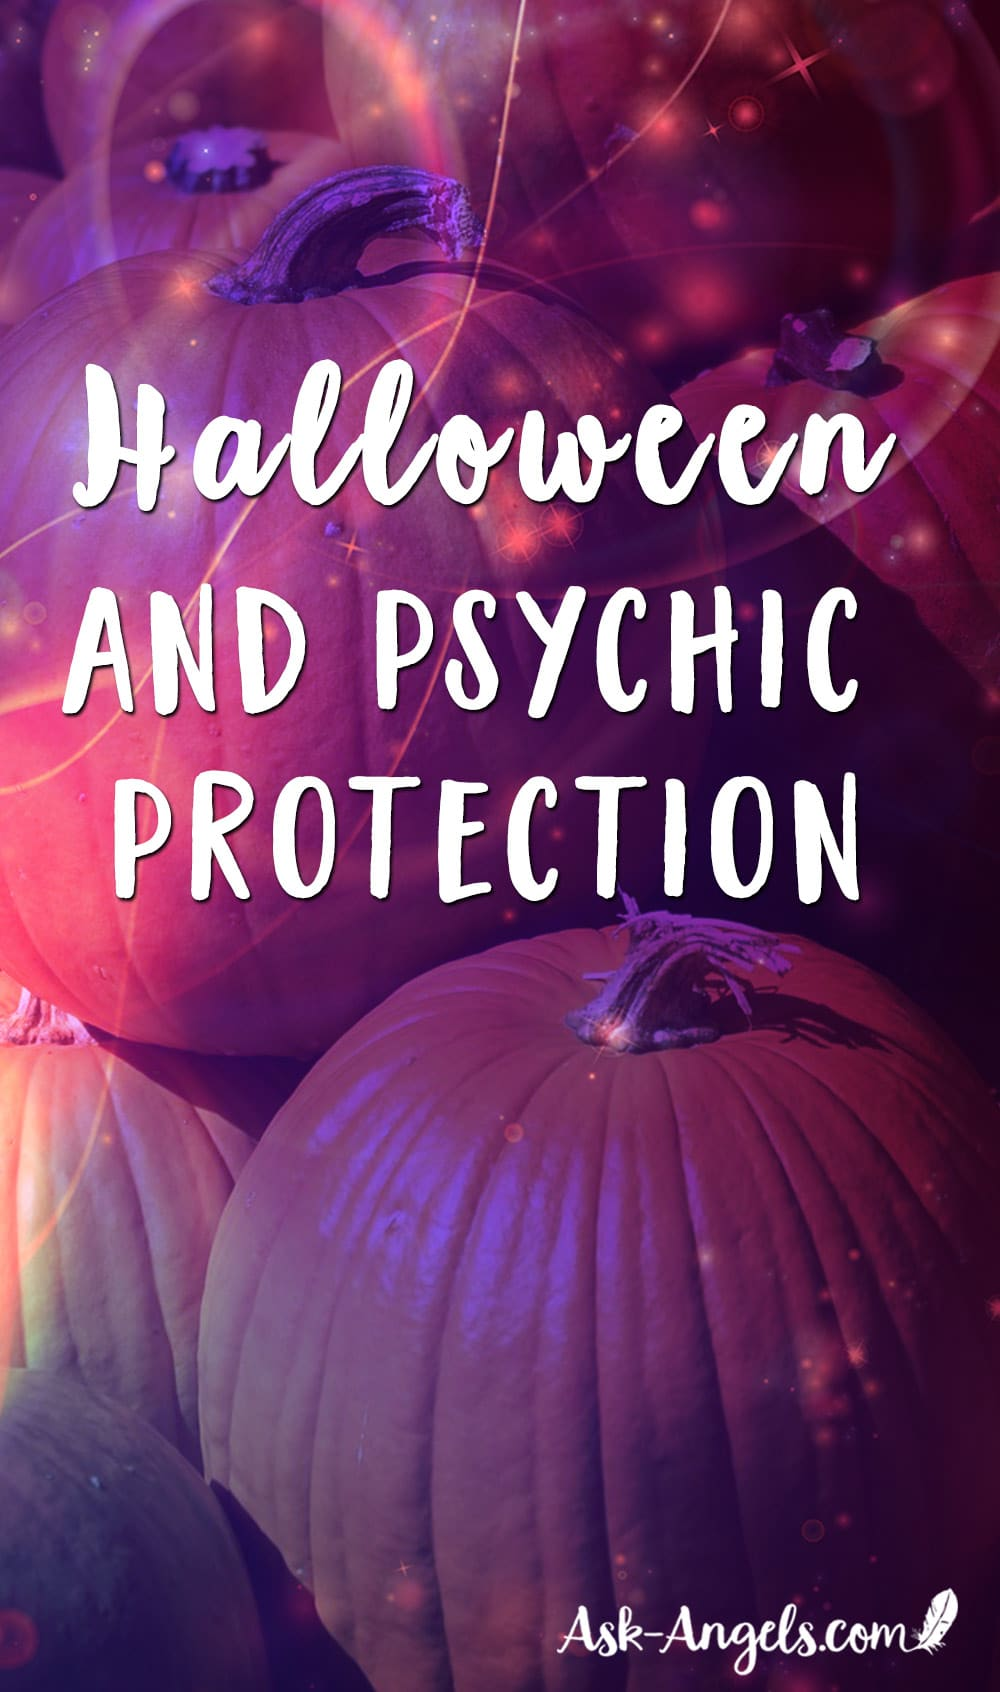 Halloween and Psychic Protection